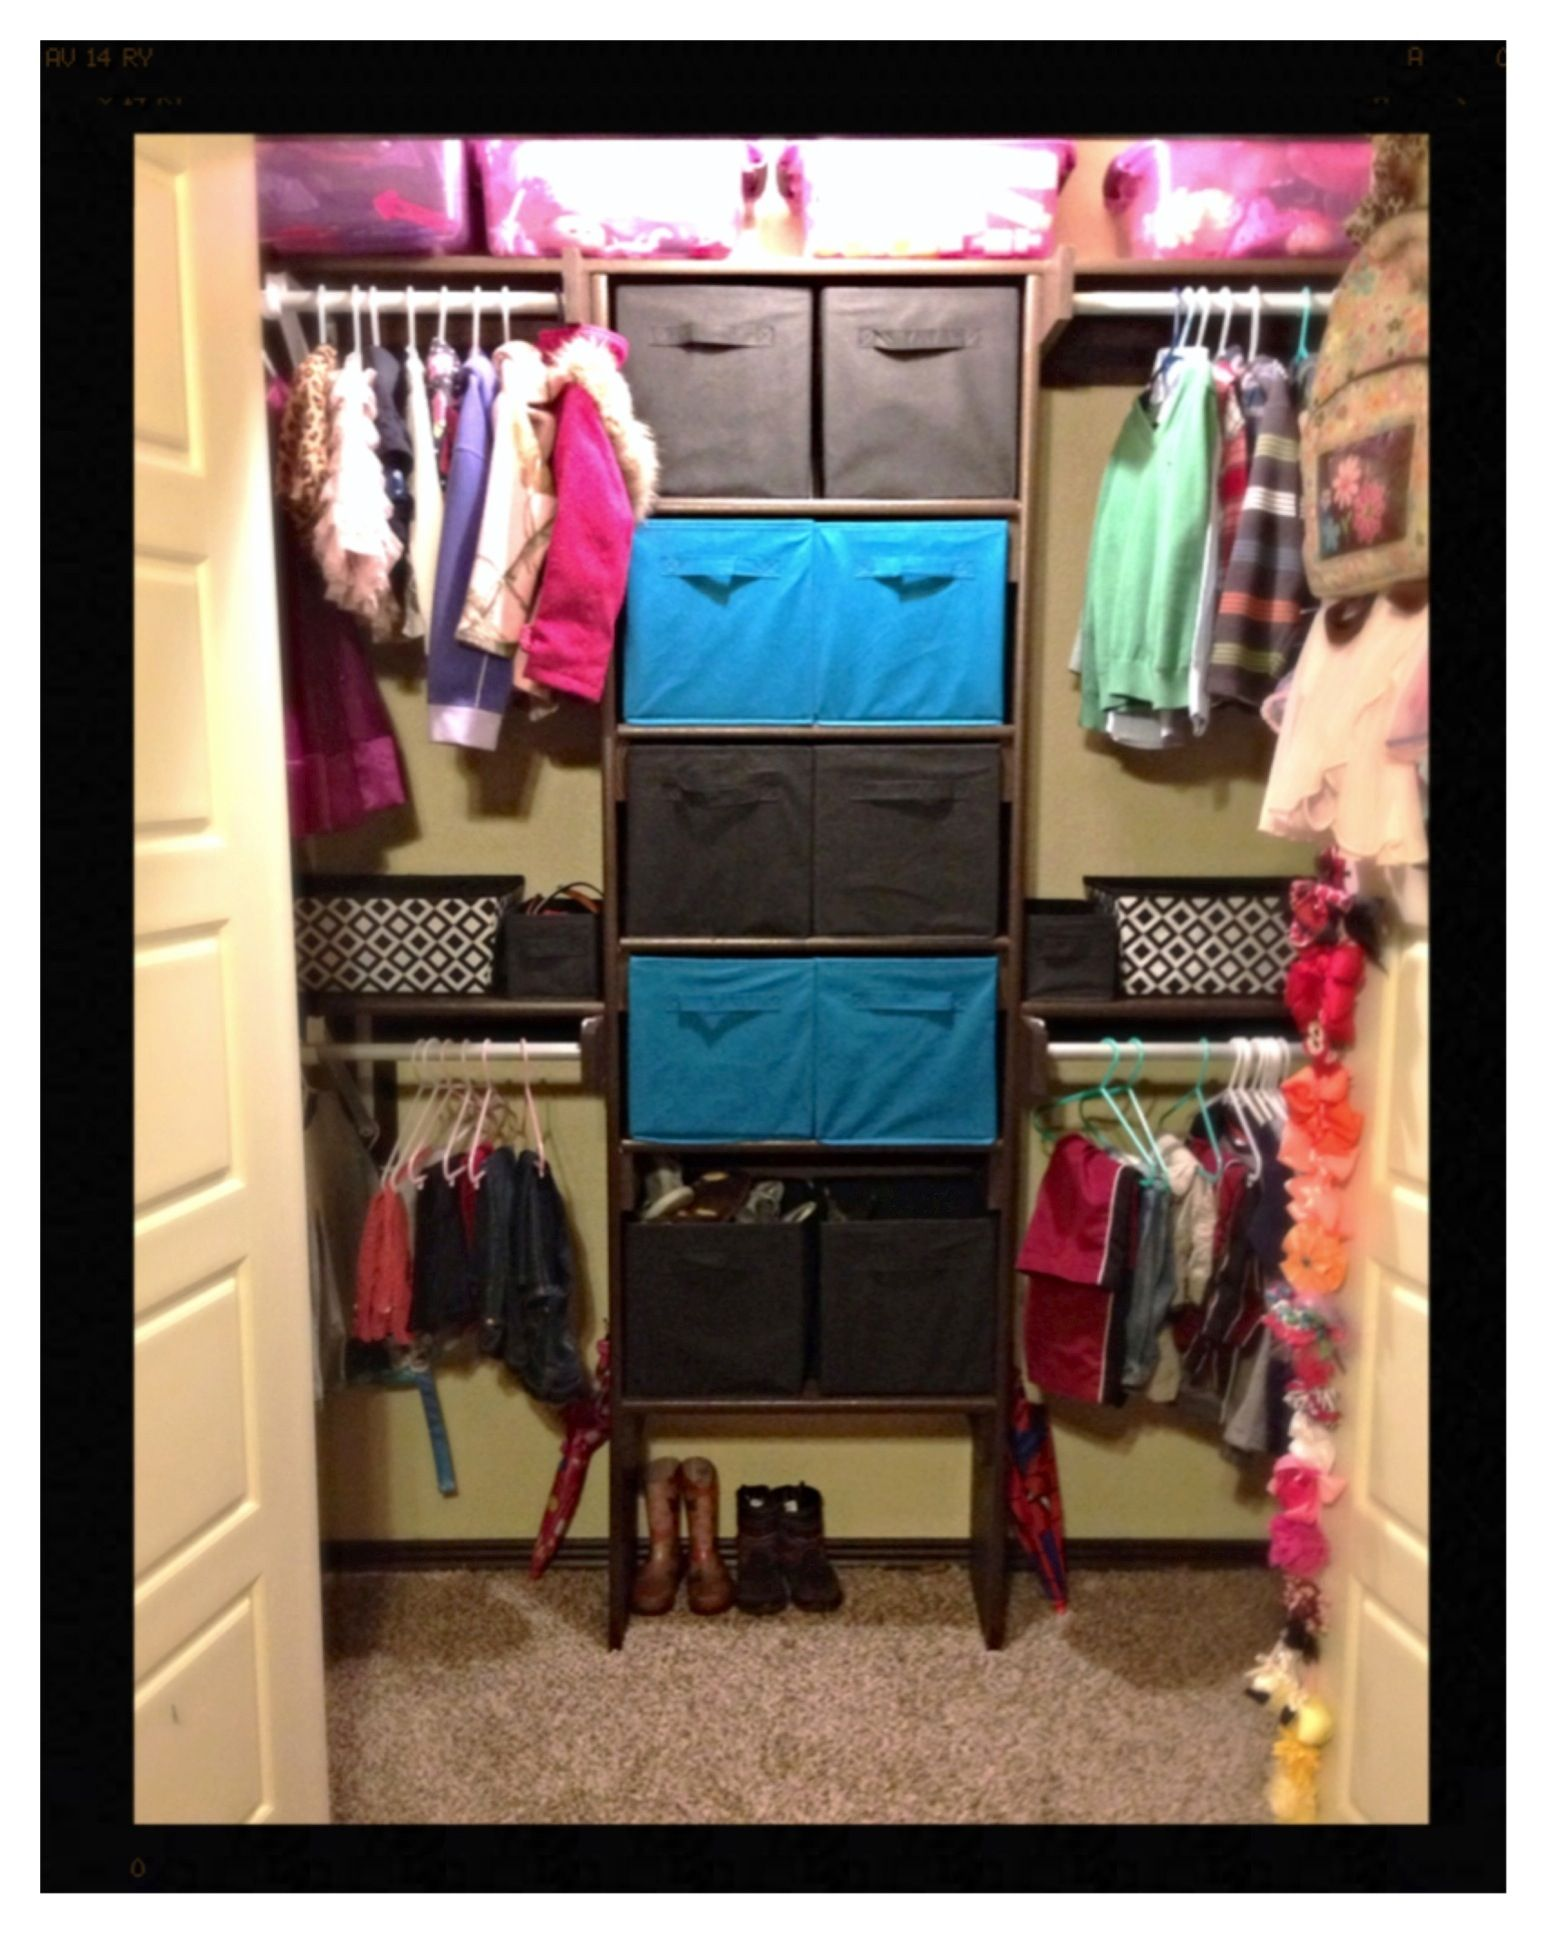 Canvas Fabric Storage Cubes To Organize My Kids Bedroom Closet ... Cheap!!  Cubes From Dollar General!